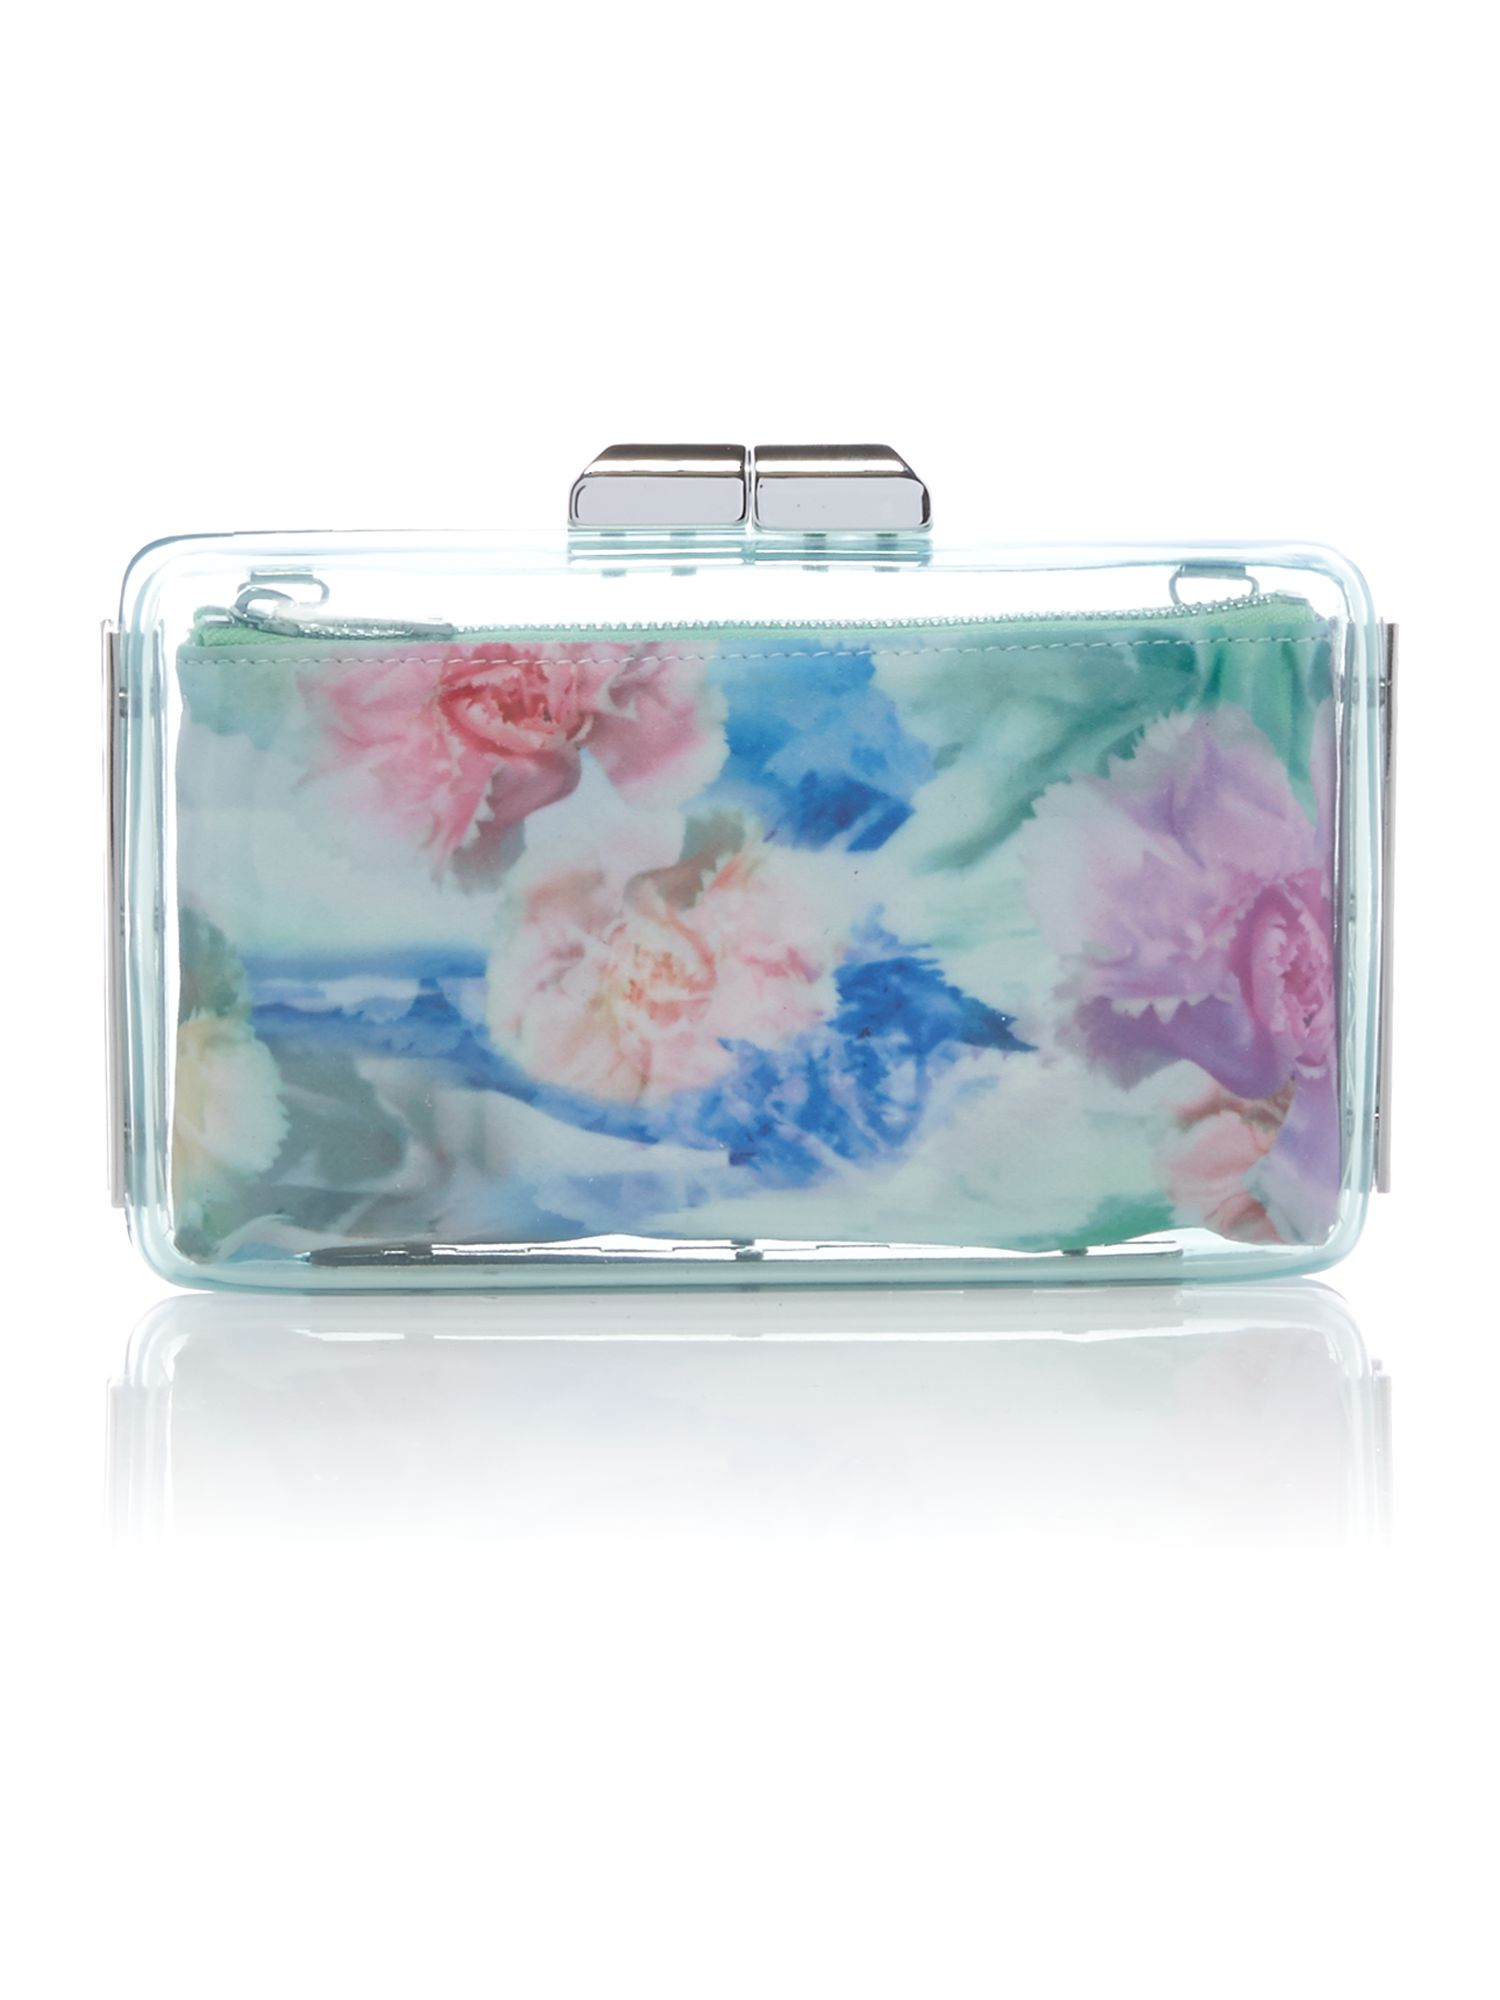 Mini multi coloured clear clutch bag